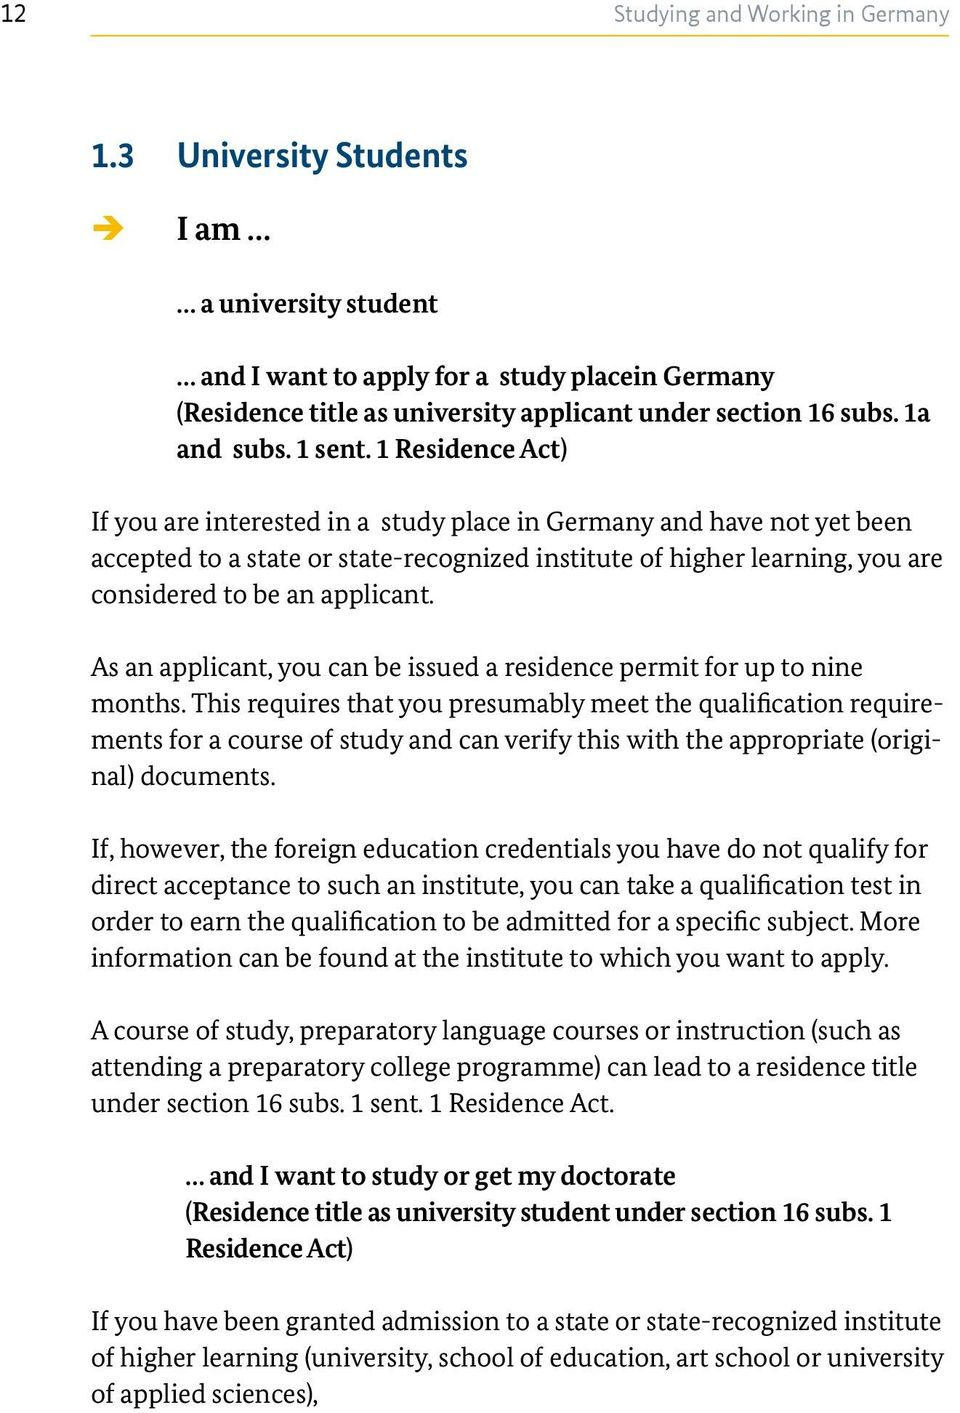 1 Residence Act) If you are interested in a study place in Germany and have not yet been accepted to a state or state-recognized institute of higher learning, you are considered to be an applicant.